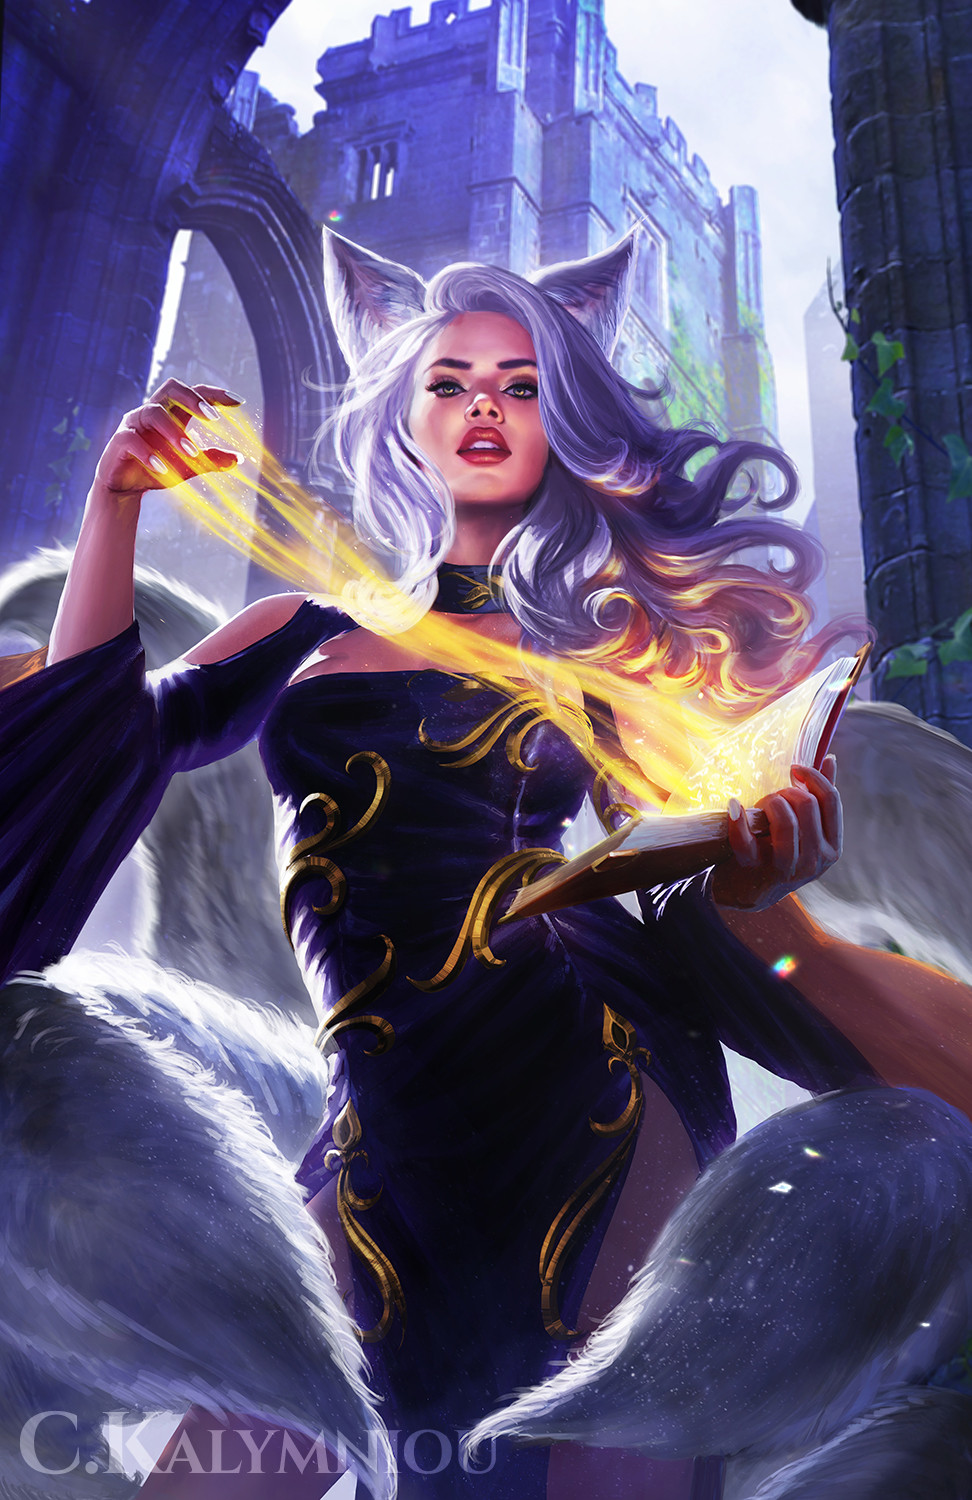 1girl animal_ears book breasts casting_spell castle caterina_kalymniou china_dress chinese_clothes dress fantasy fox_ears fox_girl fox_tail grimoire heretic_spellblade highres holding holding_book long_sleeves looking_at_viewer magic medium_hair multiple_tails purple_dress silver_hair sleeves_past_elbows solo tail watermark